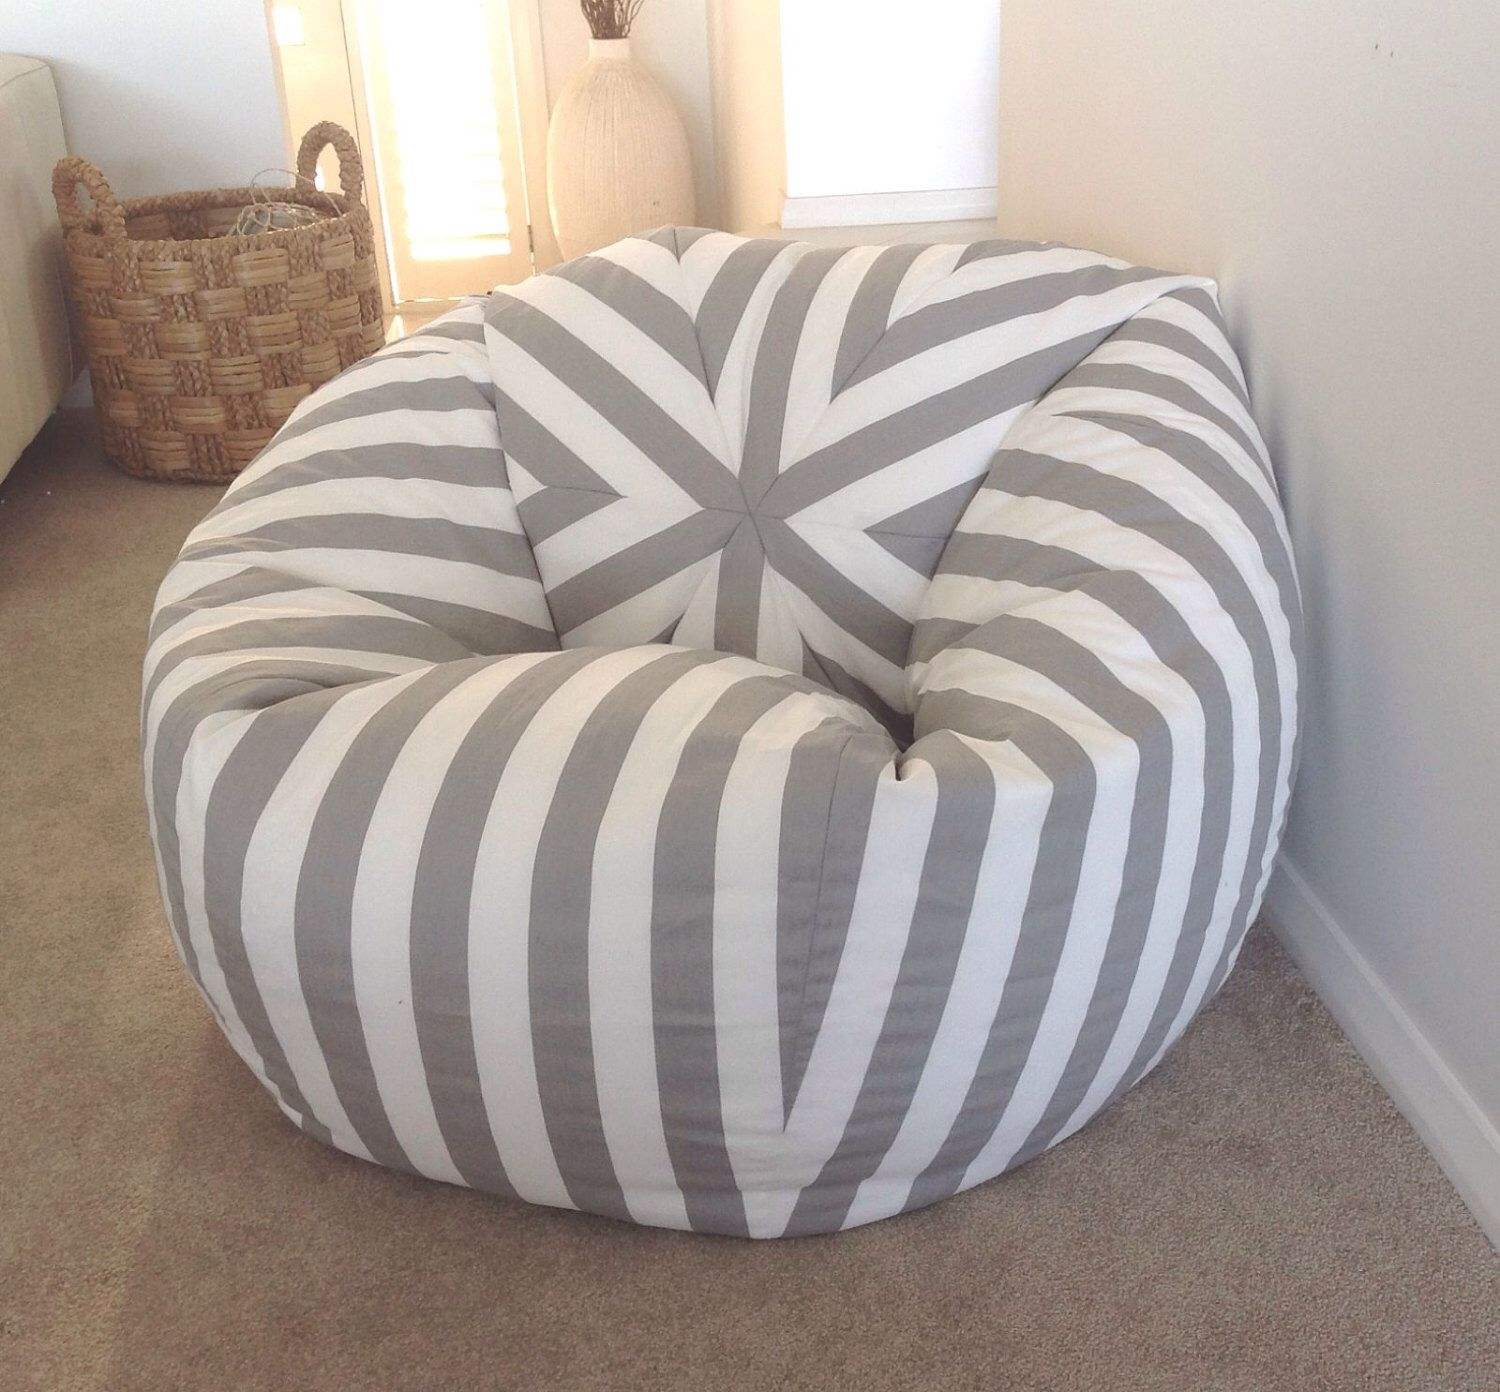 Bean Bag canopy stripe Grey and White Stripes Bean Bag cover Bean